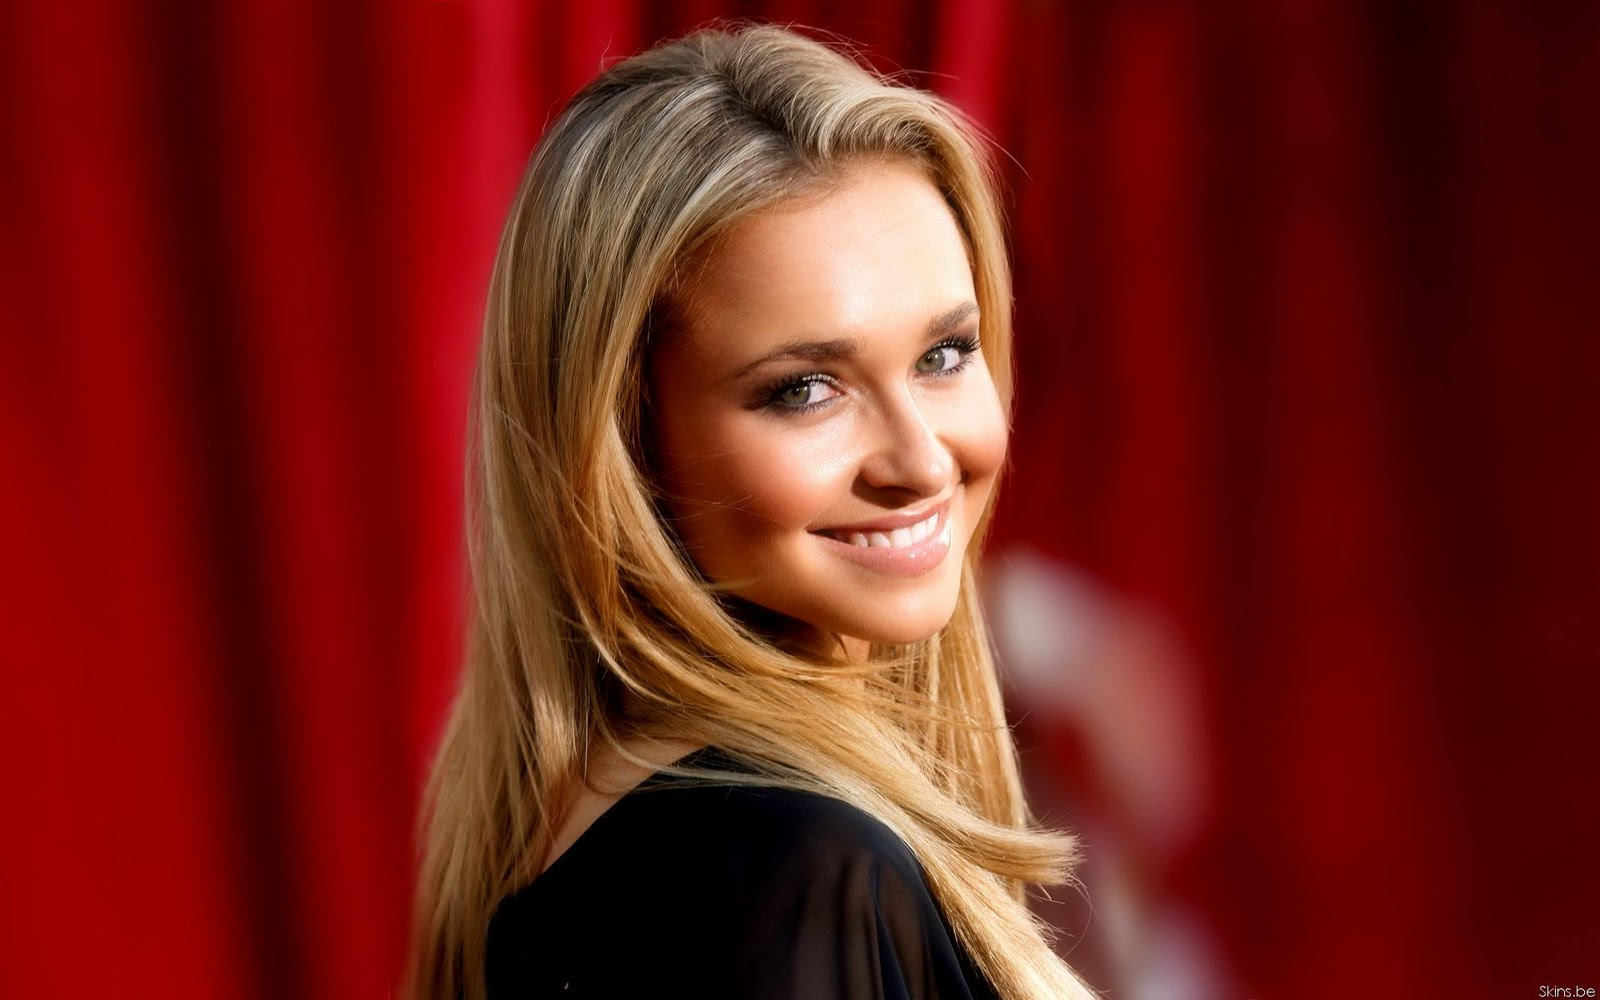 http://2.bp.blogspot.com/-BxLvzfXYO6A/Tto-IsljTjI/AAAAAAAAKEM/eCxctE82oHo/s1600/Hayden_Panettiere_photo_shoot_wallpapers_01.jpg